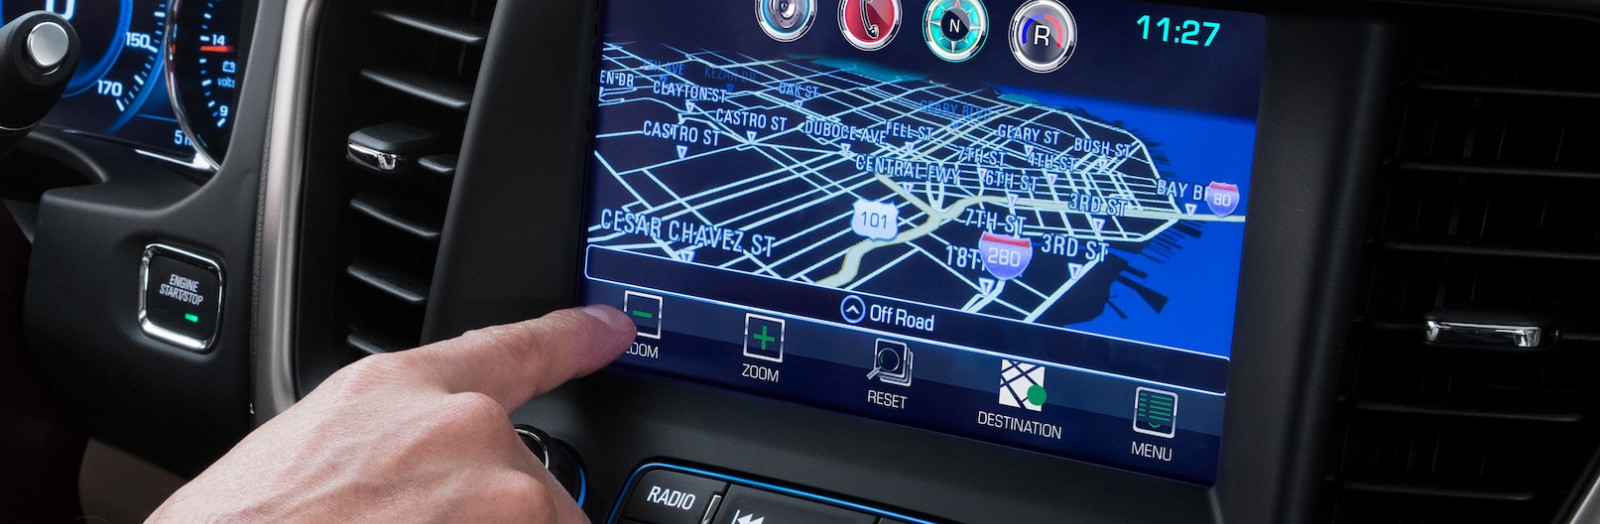 Technology in the 2019 Acadia